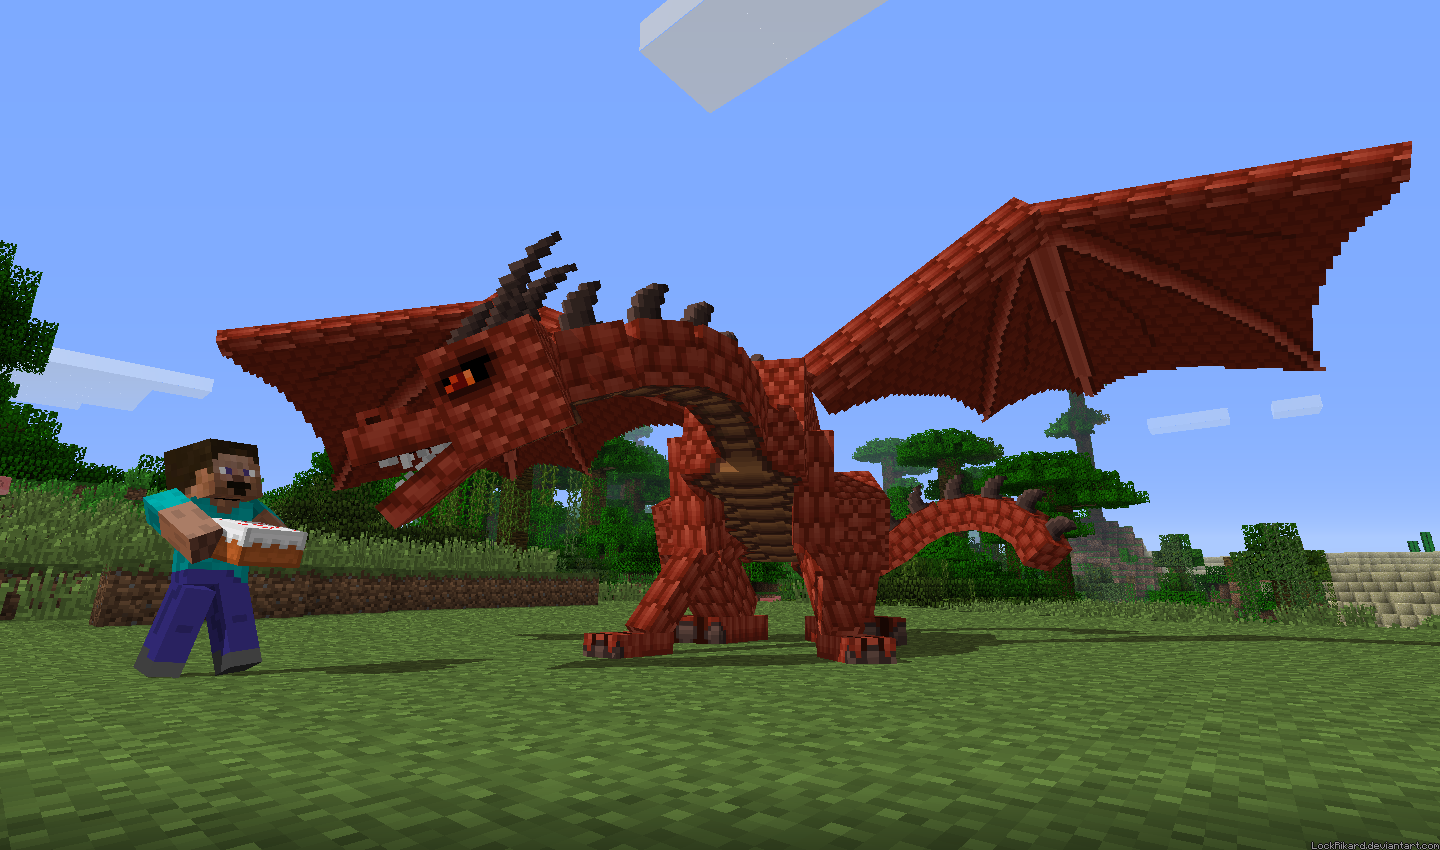 How to make a dragon in maynecraft